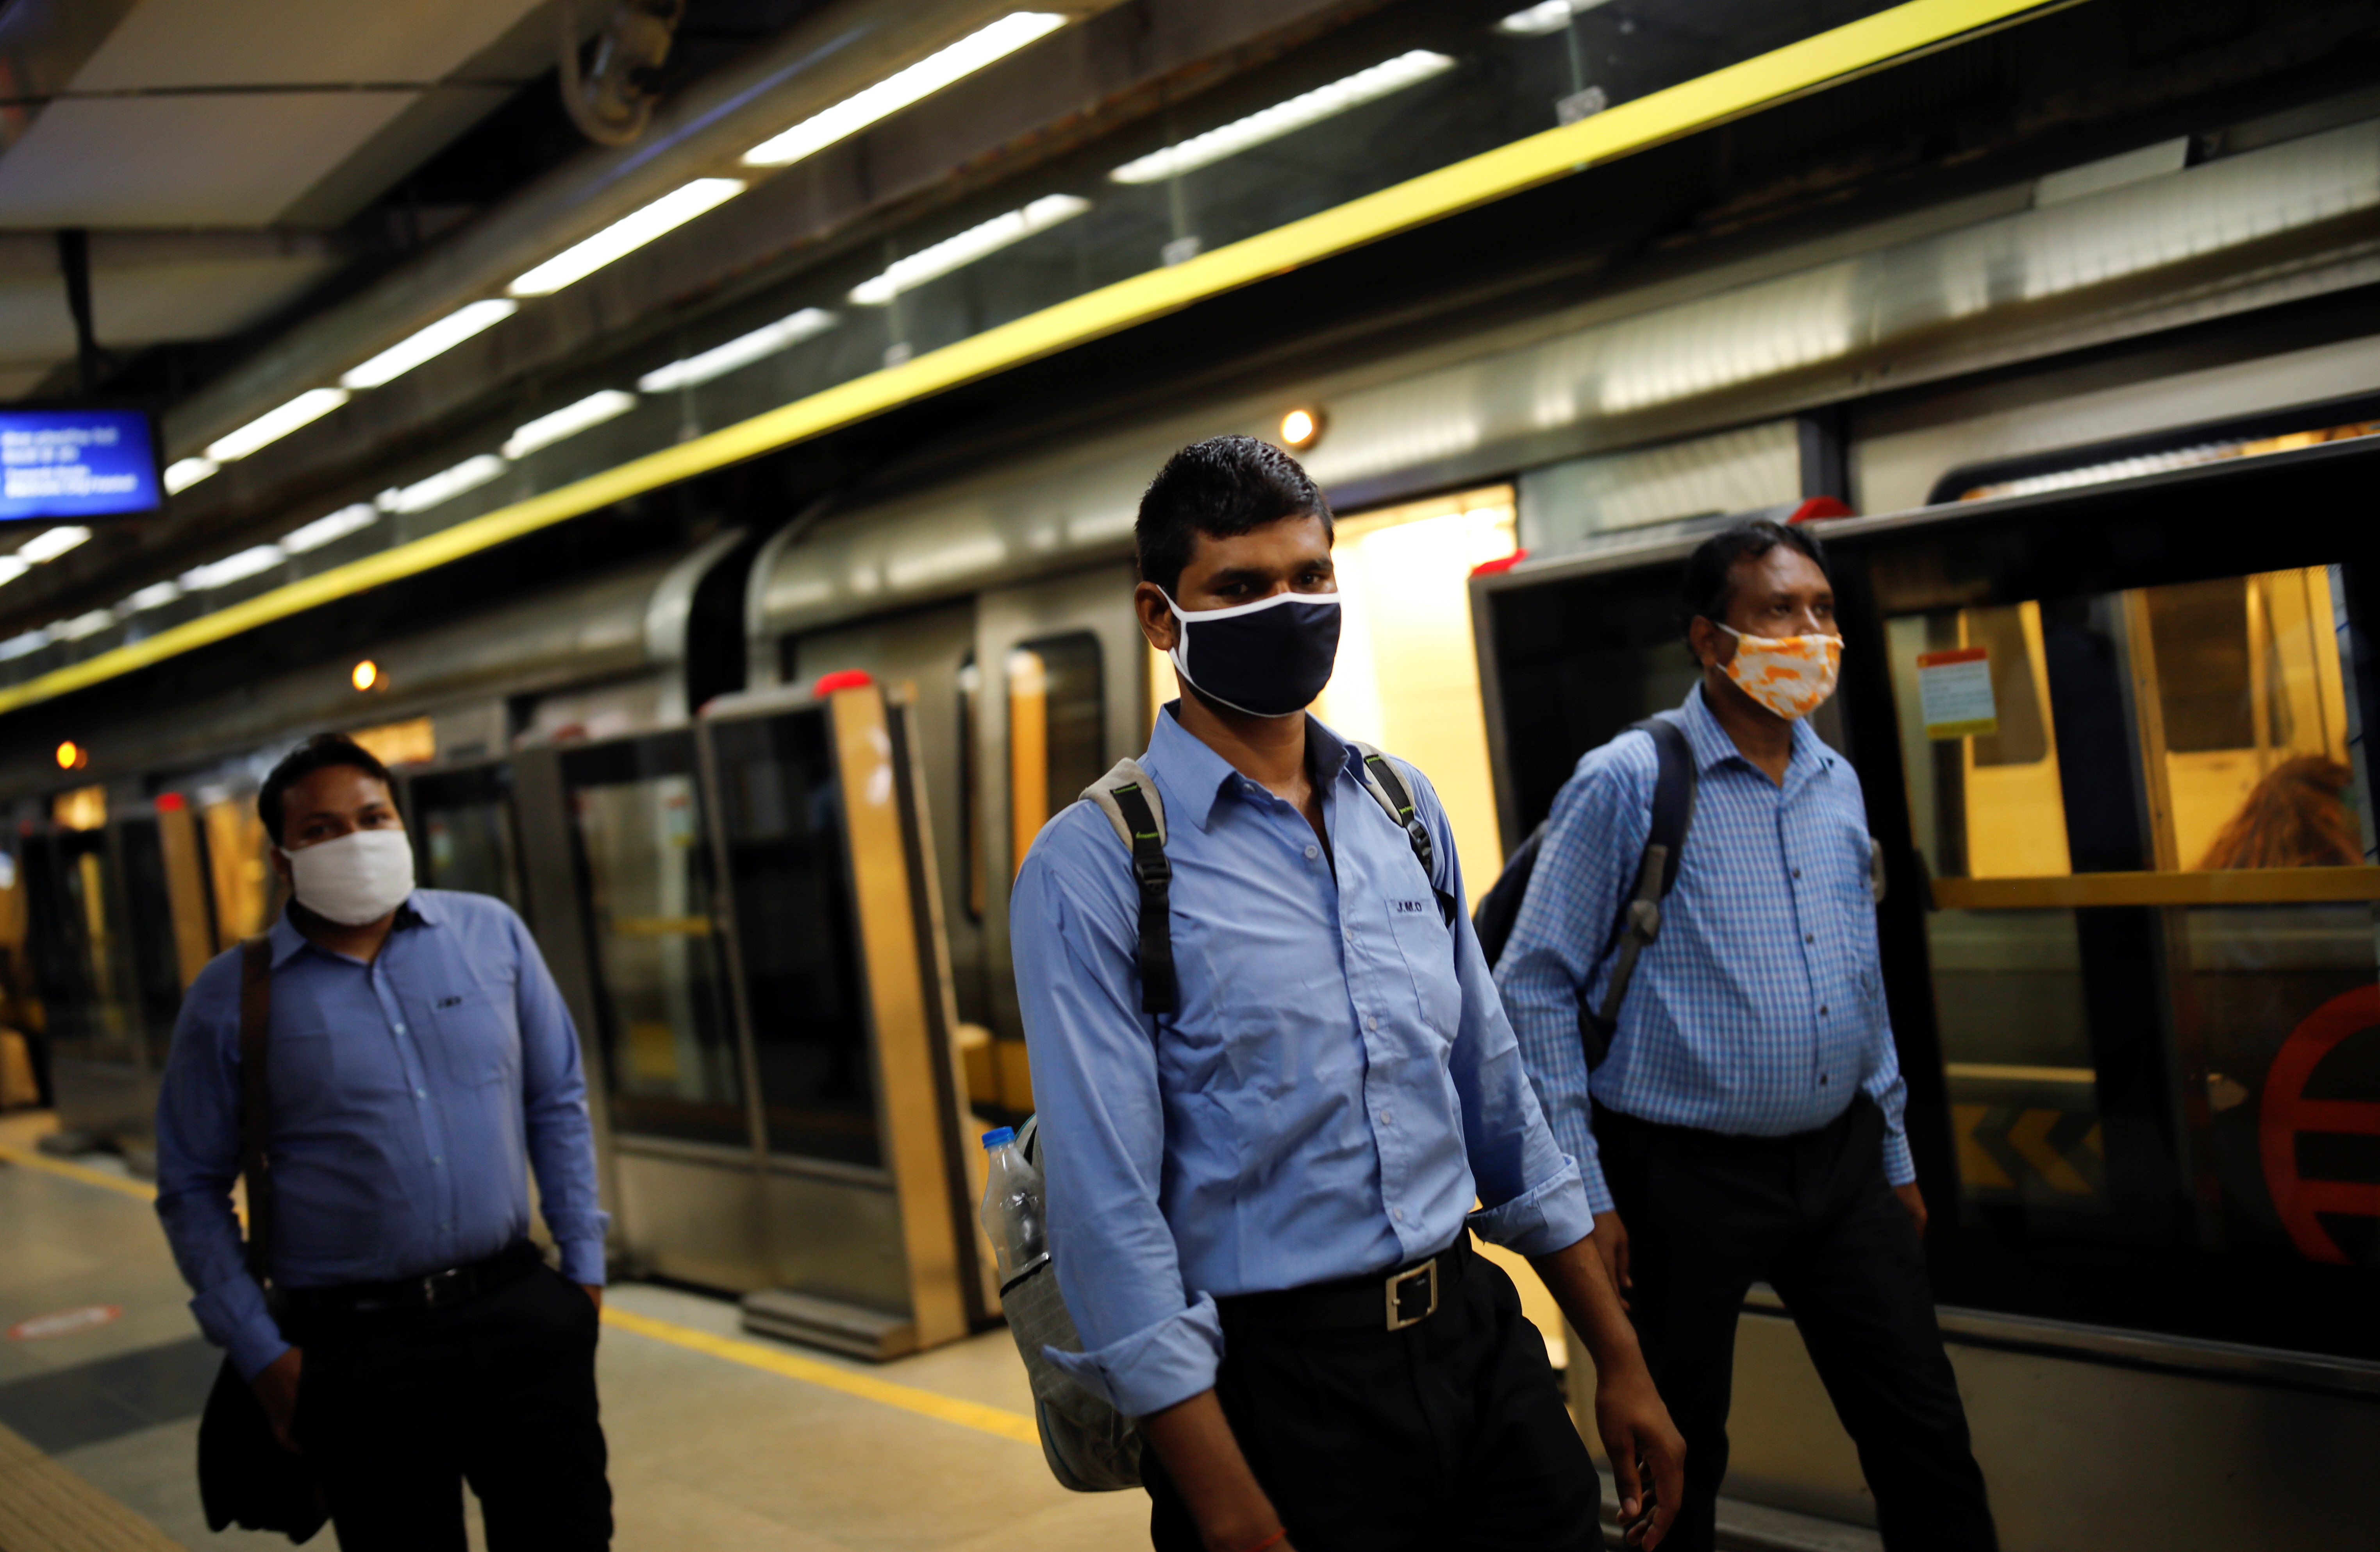 Commuters wearing face masks walk at a Delhi metro train station, on the first day of the restart of their operations, amidst the spread of coronavirus disease (COVID-19), in New Delhi, India, September 7, 2020. REUTERS/Adnan Abidi - RC2ITI9J5OUB